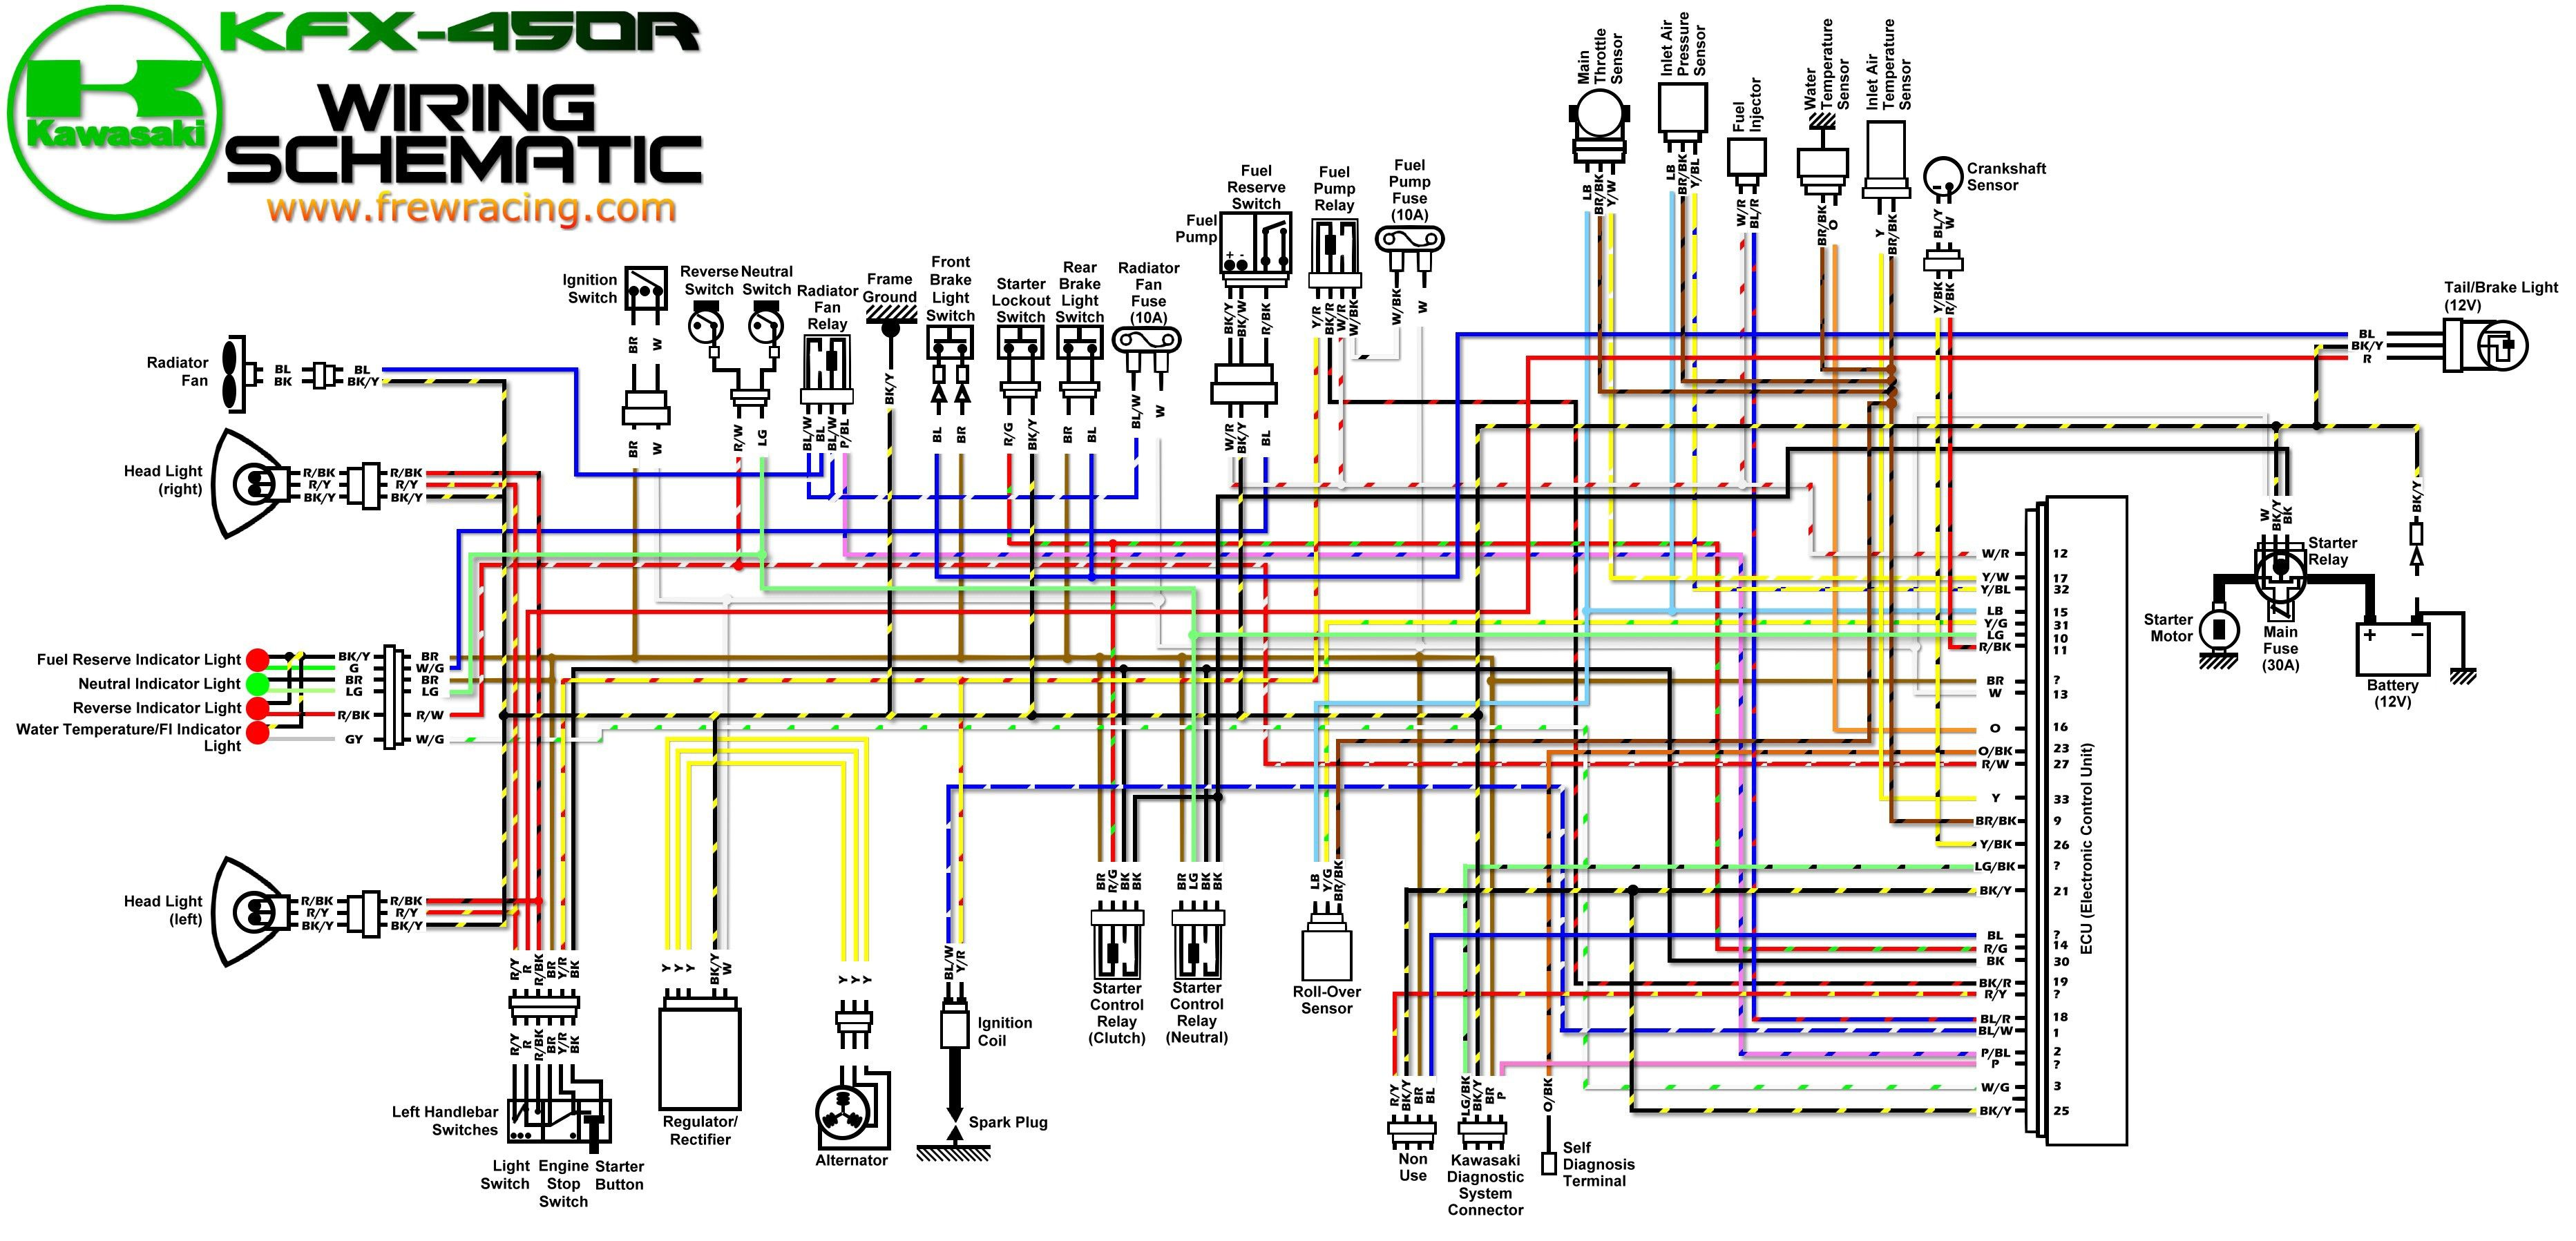 Fuel Pump Wiring Harness Diagram Fresh Gutted Diagrams For